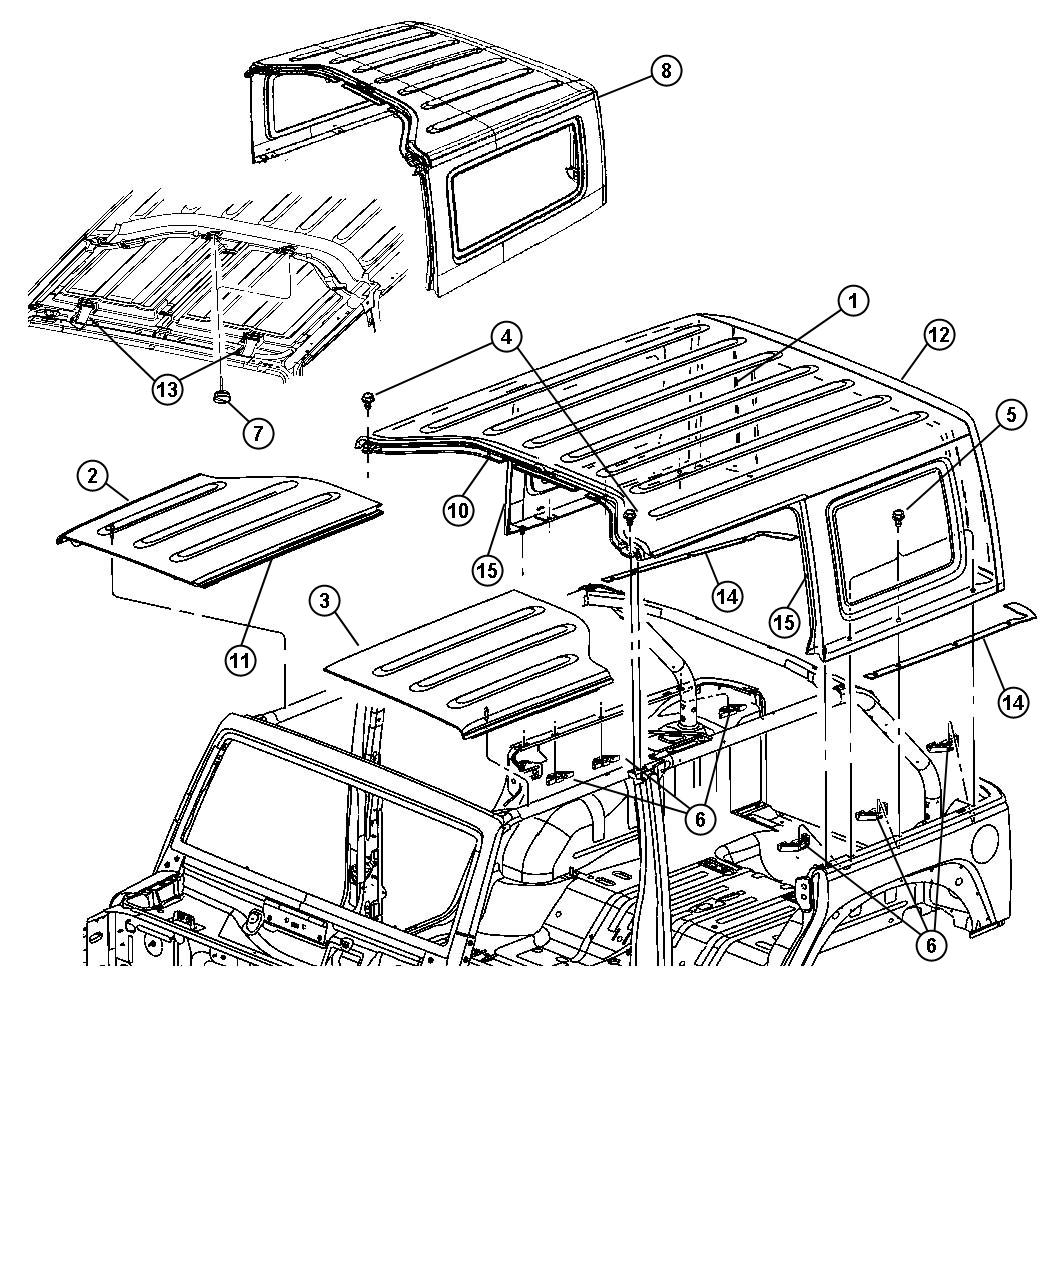 55175816AC moreover Product detail as well Rugged Ridge 13516 10 Soft Top And Exo Top Header Kit besides 77A6719A3818144 additionally ShowAssembly. on jeep wrangler hardtop cart